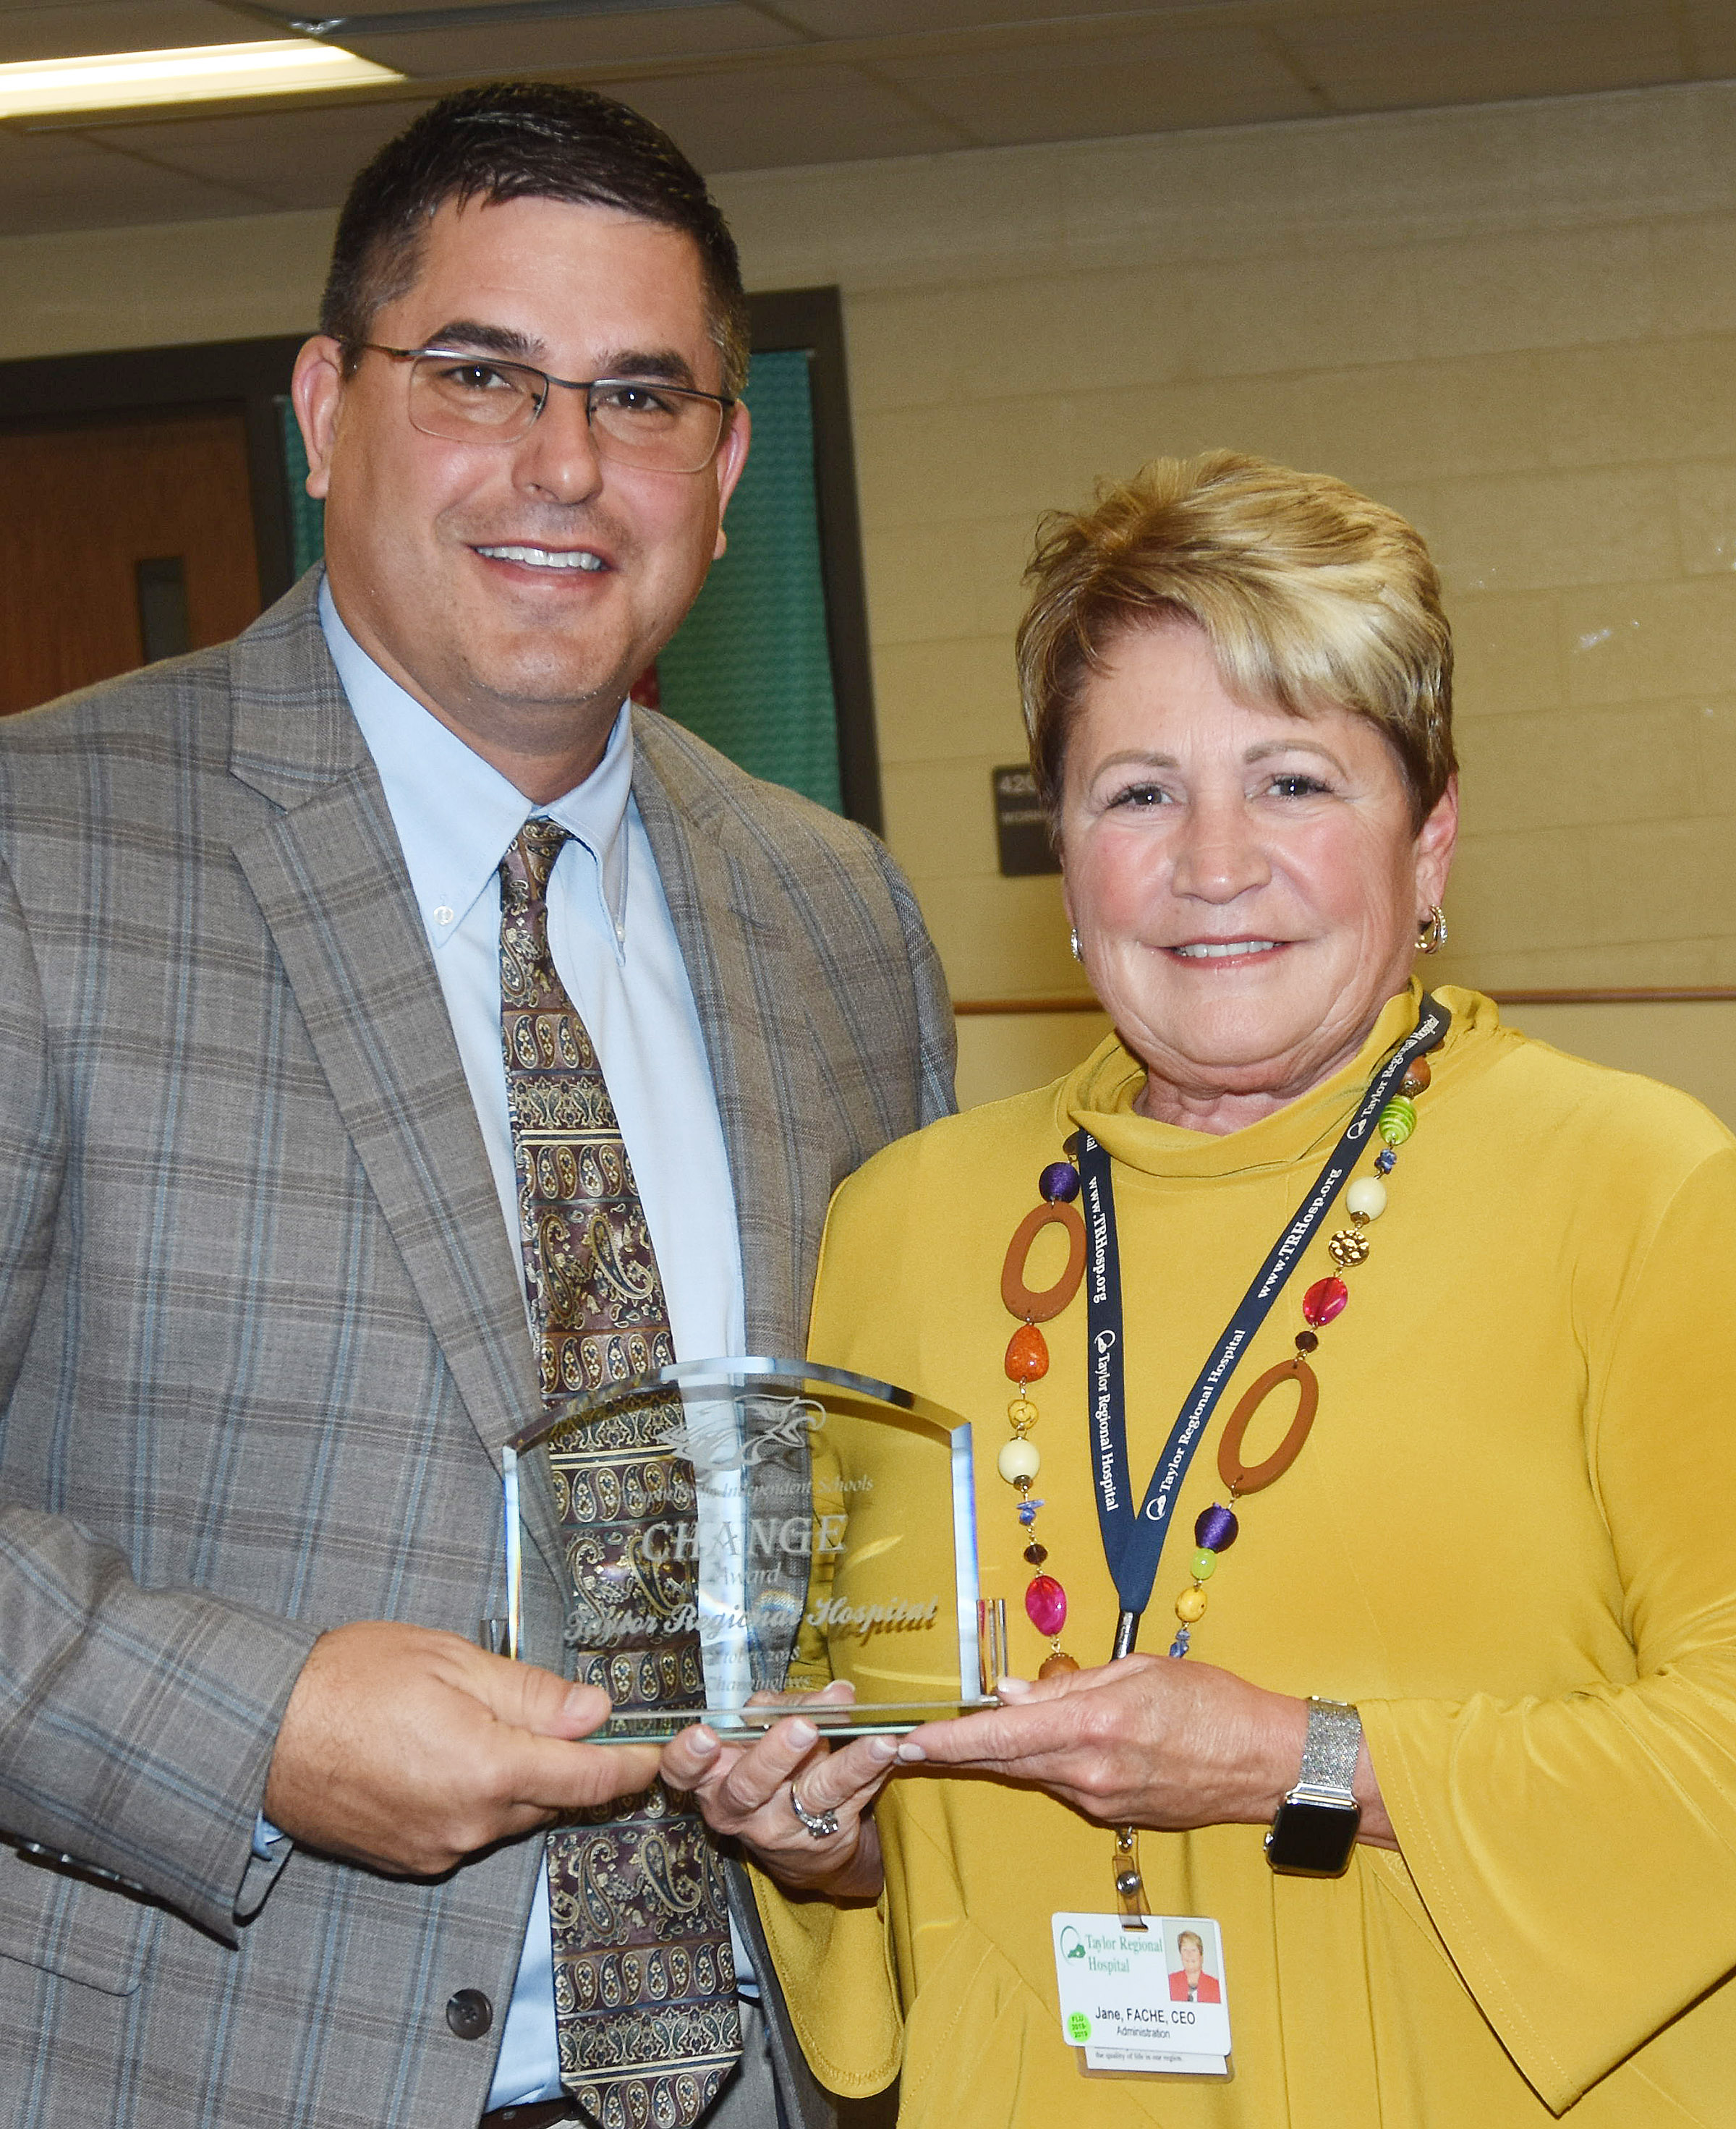 Campbellsville Independent Schools Superintendent Kirby Smith honors TRH CEO Jane Wheatley with the community Change Award.